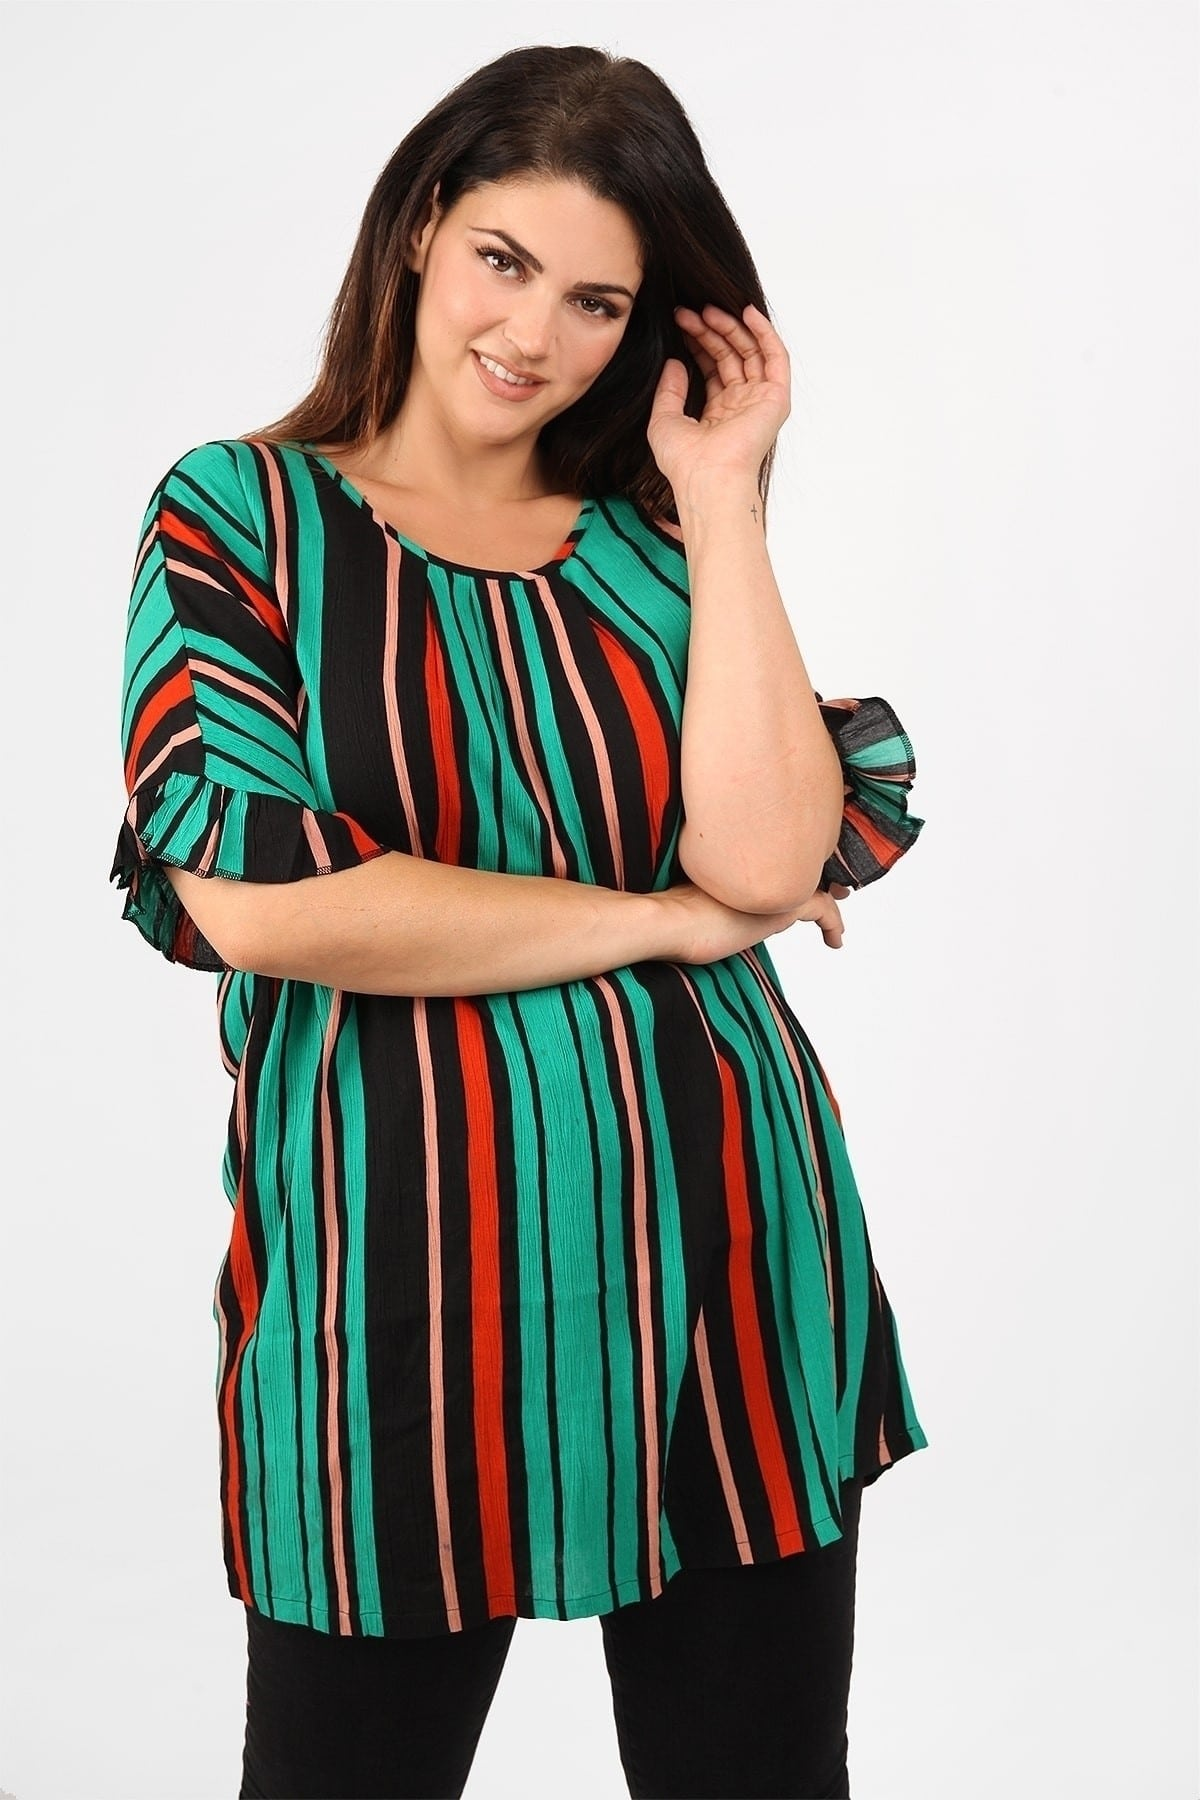 Shirtblouse in colourful stripe pattern